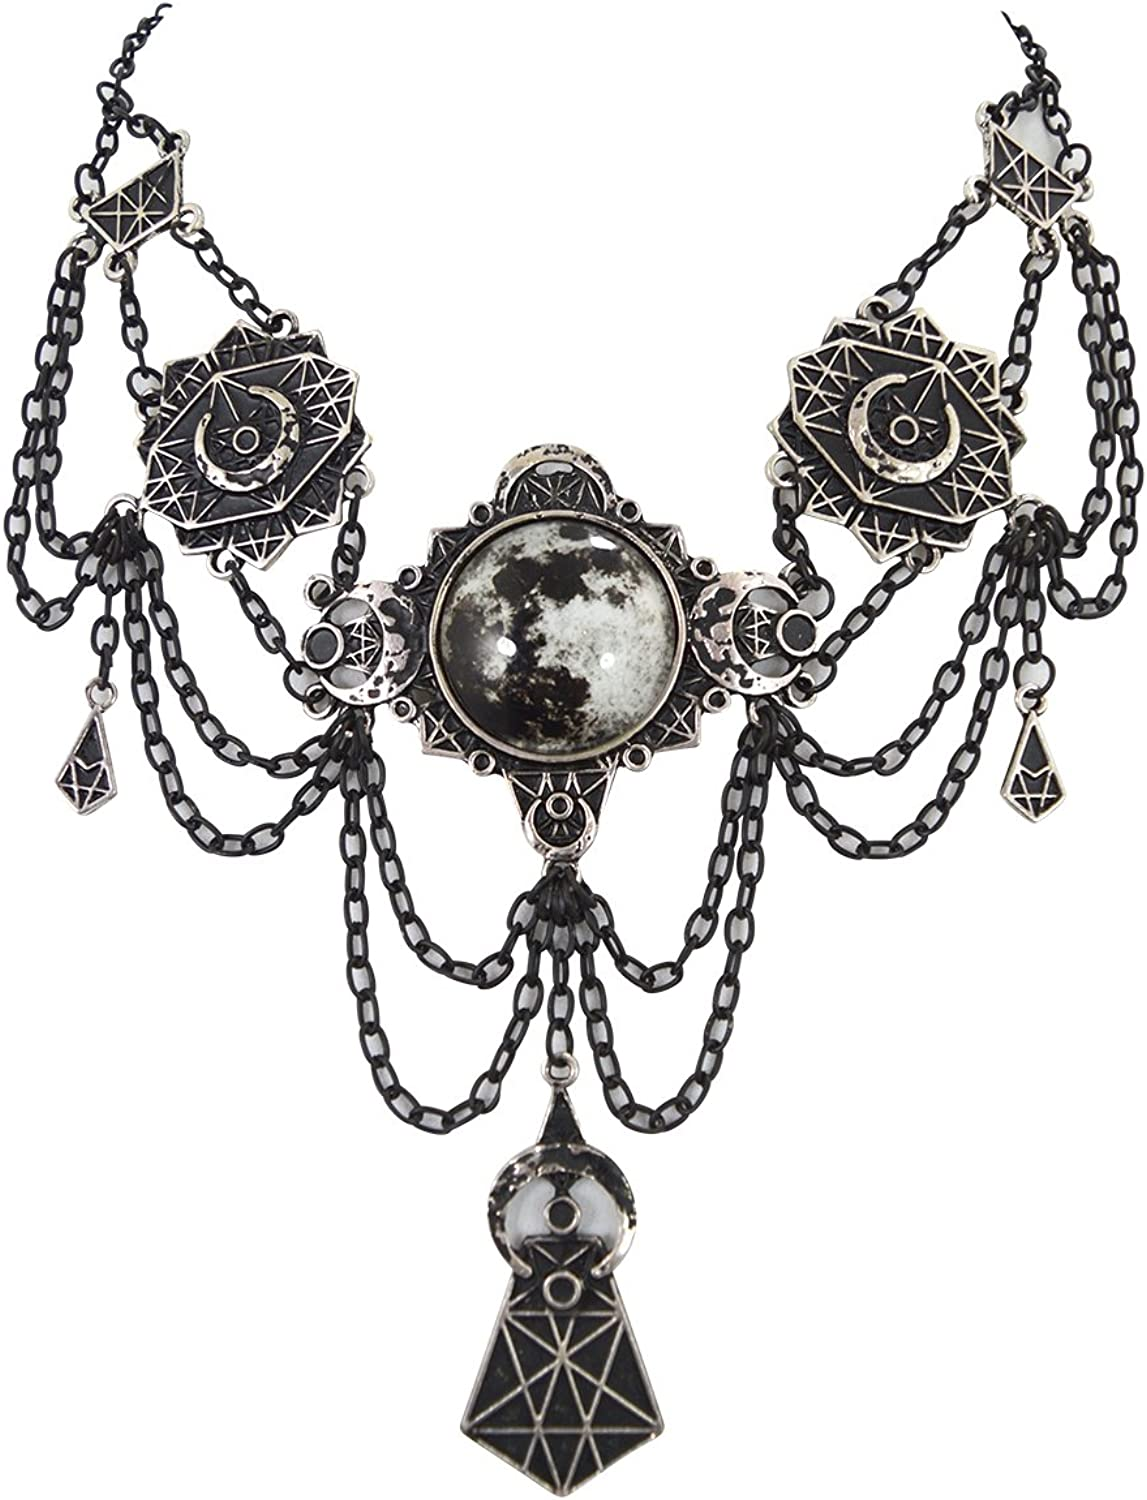 Non-Leather /& Adjustable Gothic Silver Toned Crescent Moon Choker Necklace